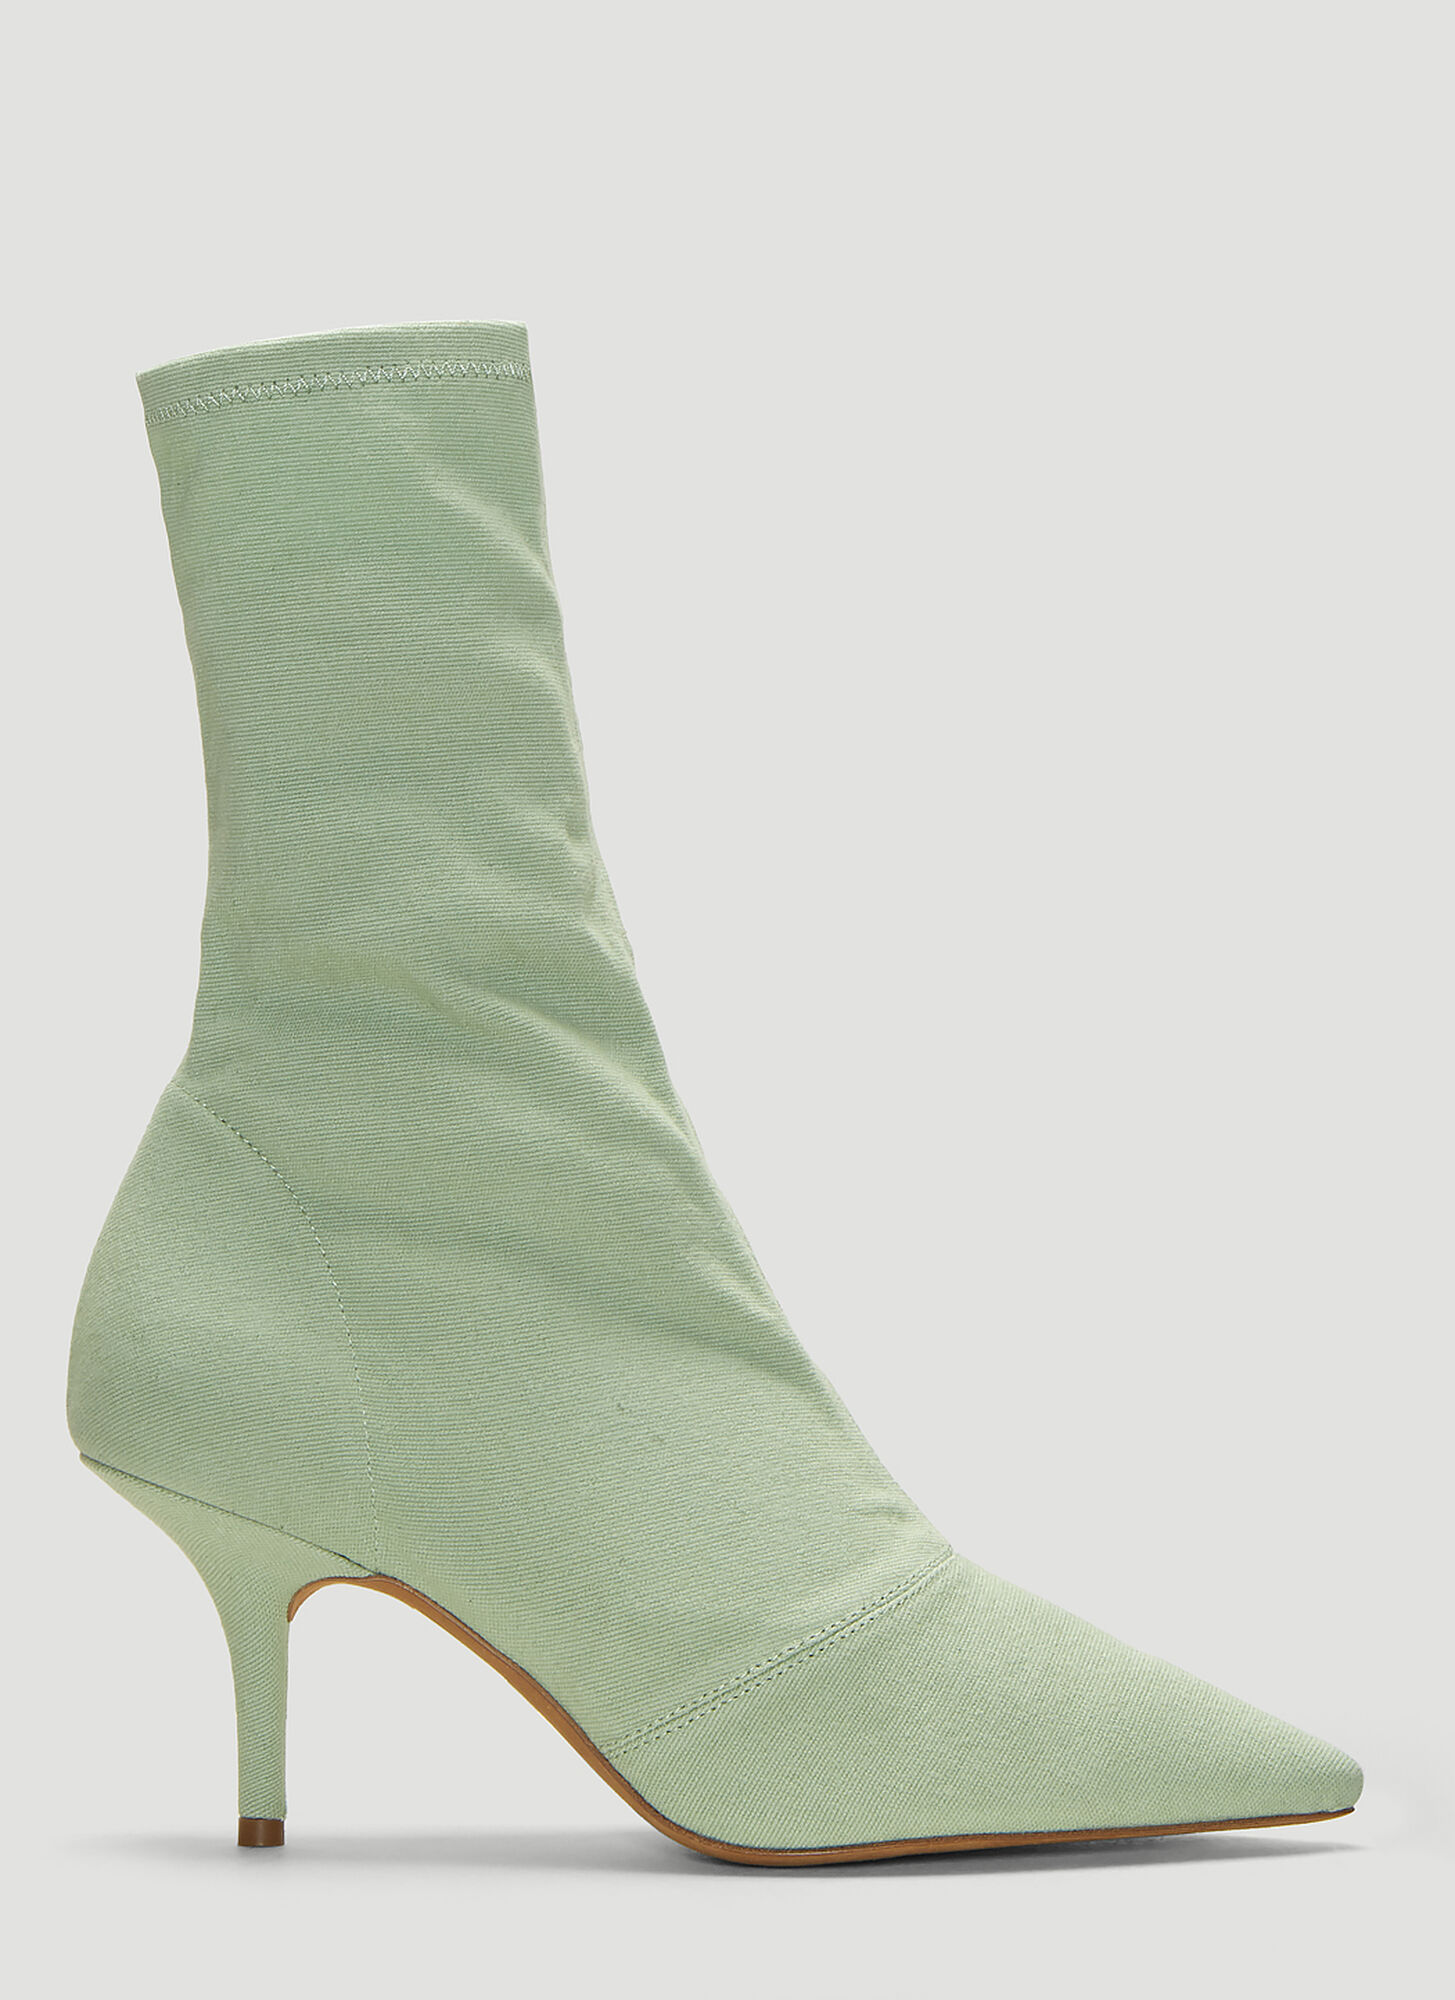 Yeezy Stretch Canvas Ankle Boots in Green